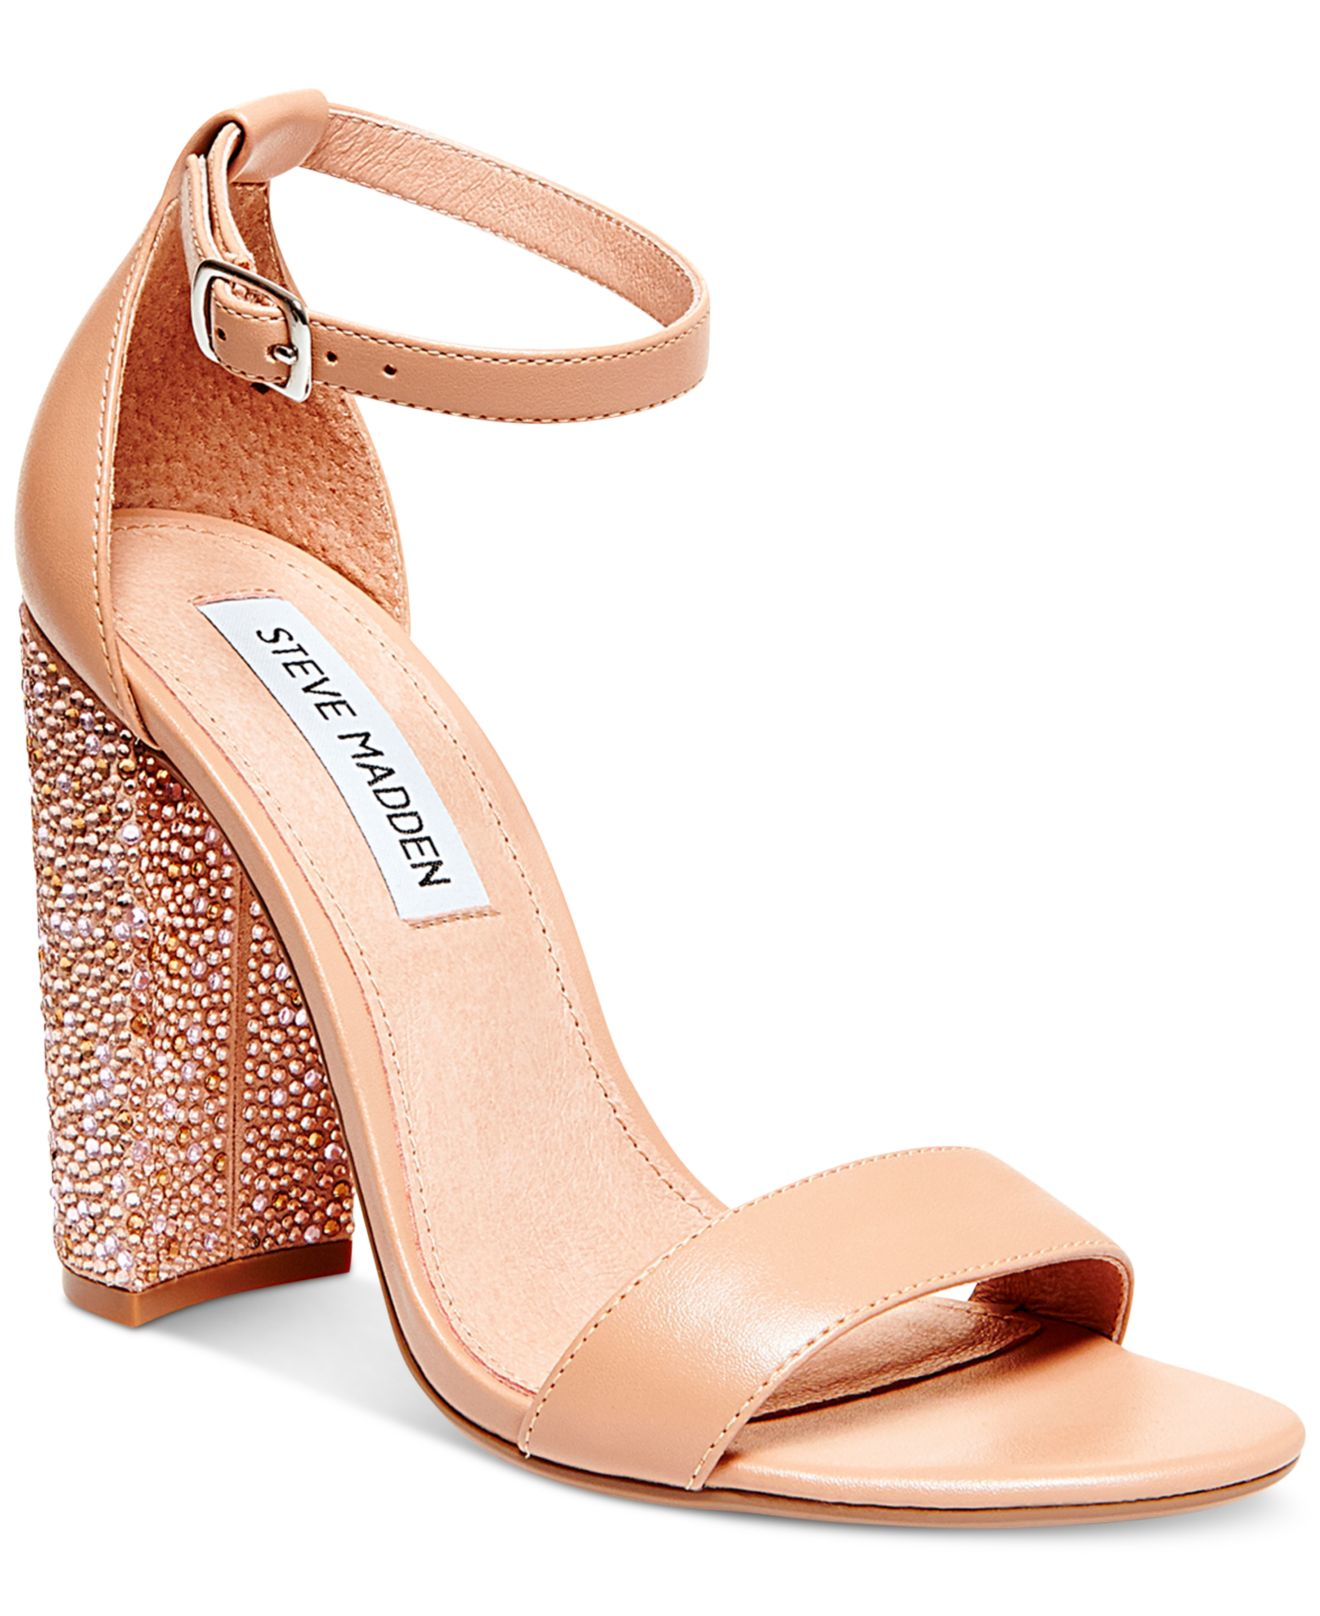 bbccaaa59dfe Lyst - Steve Madden Women s Carson-r Ankle Strap Sandals in Pink